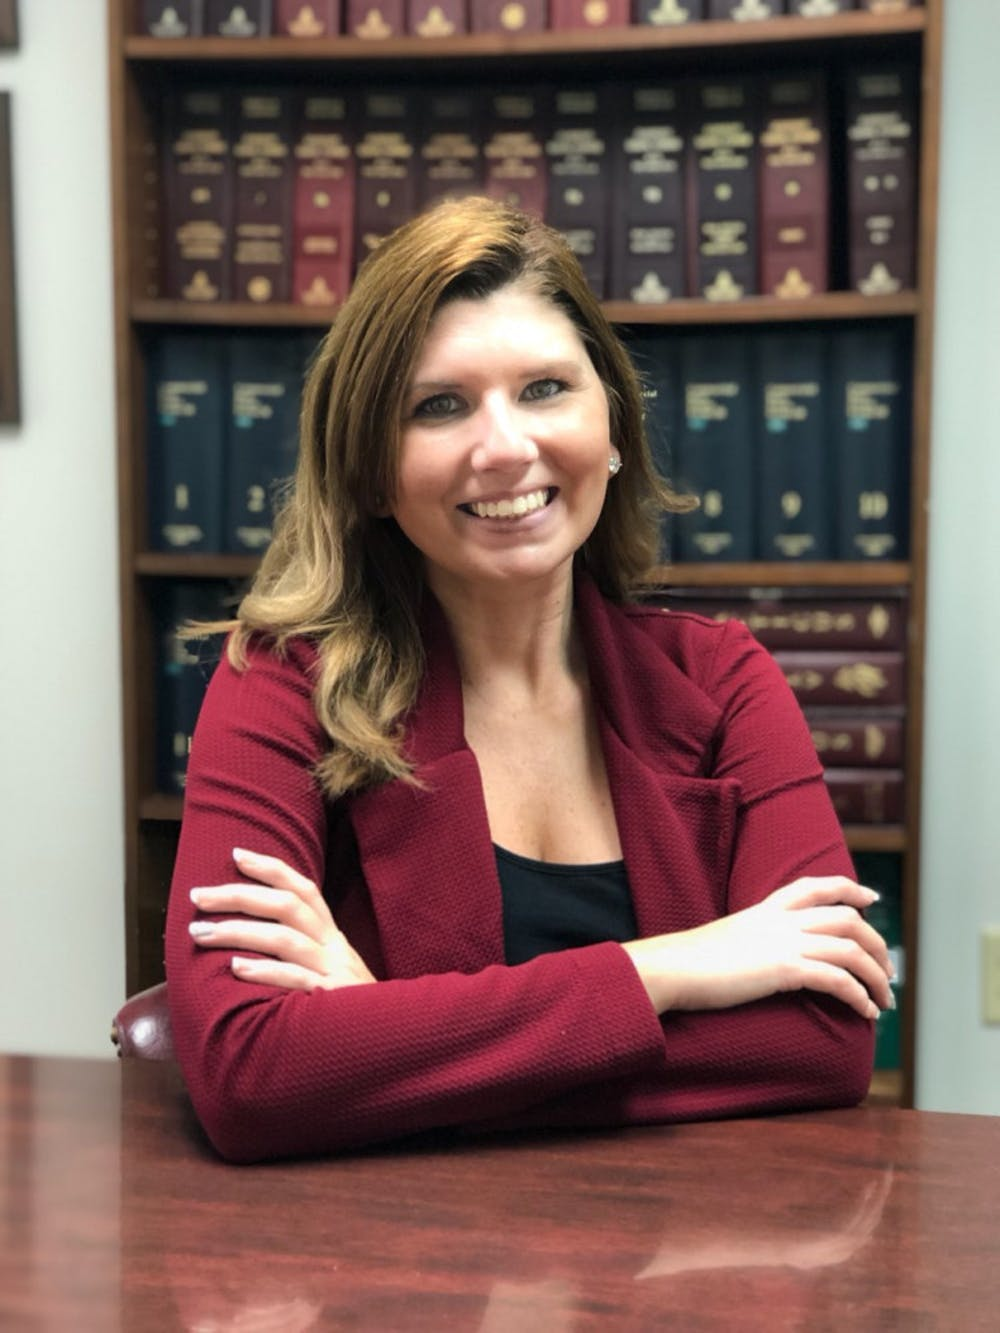 <p>Jennifer Reid, 31, of Gainesville, announced on Jan. 5 that she will run for mayor against incumbent Mayor Lauren Poe and Jenn Powell. Courtesy to The Alligator.</p>